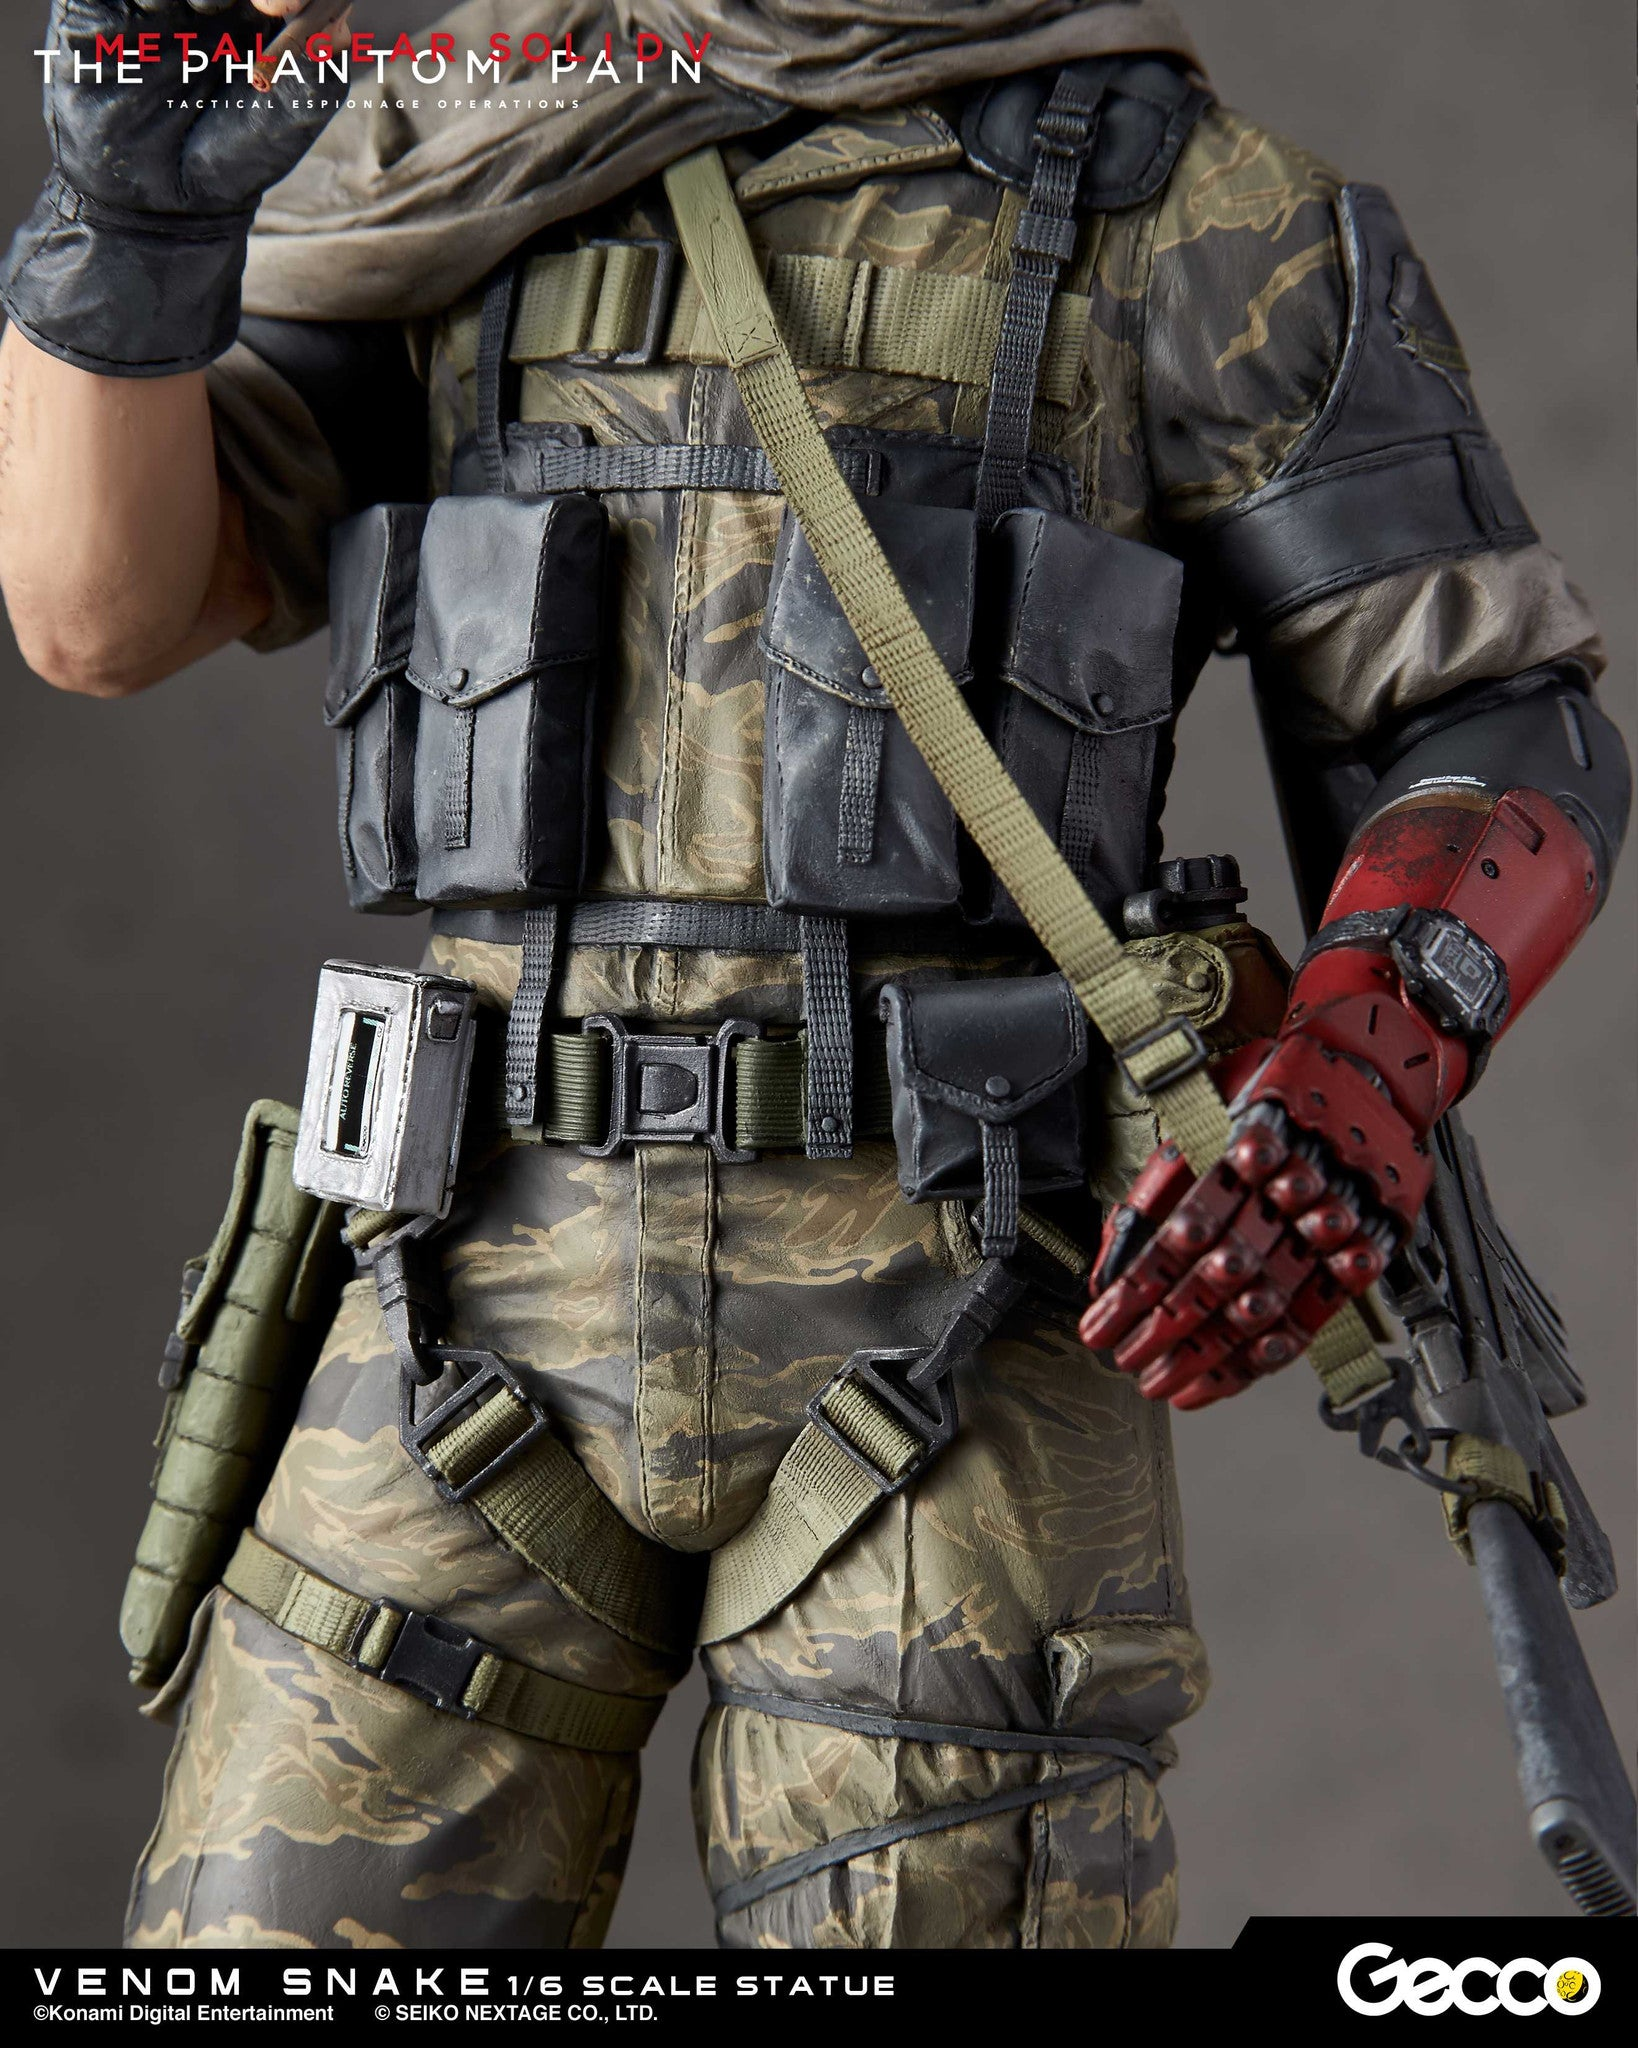 Gecco - Metal Gear Solid V: The Phantom Pain - Venom Snake 1/6 Scale Statue - Marvelous Toys - 14